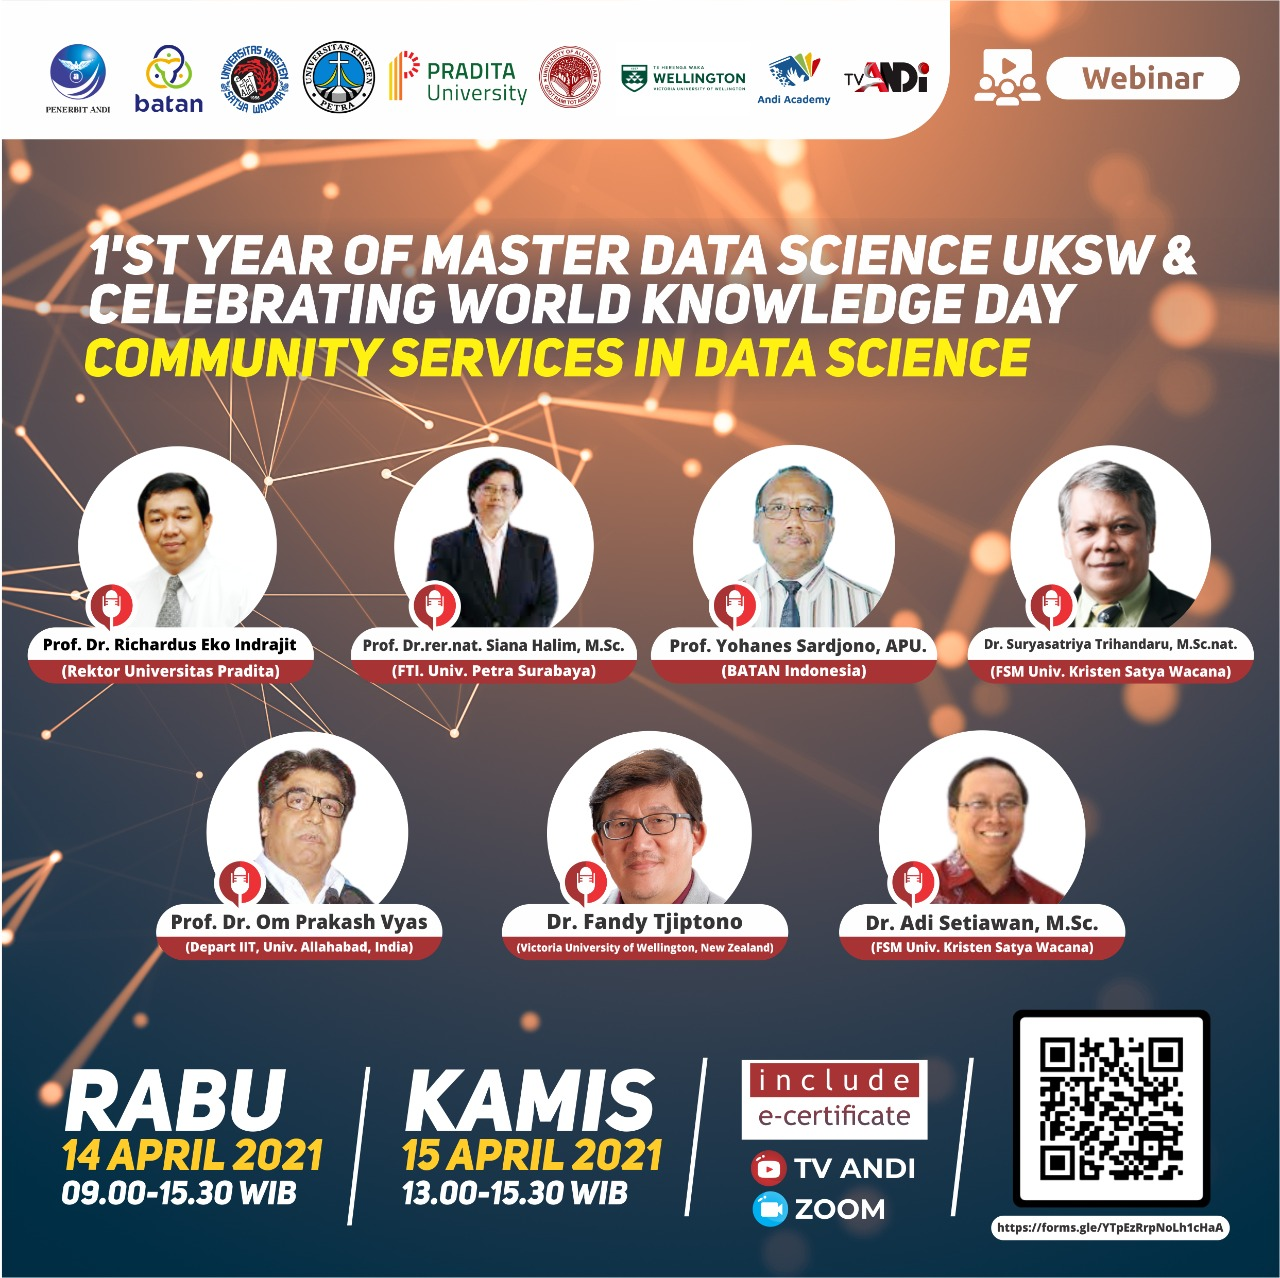 Celebrating 1st year of Master Data Science UKSW and World Knowledge Day